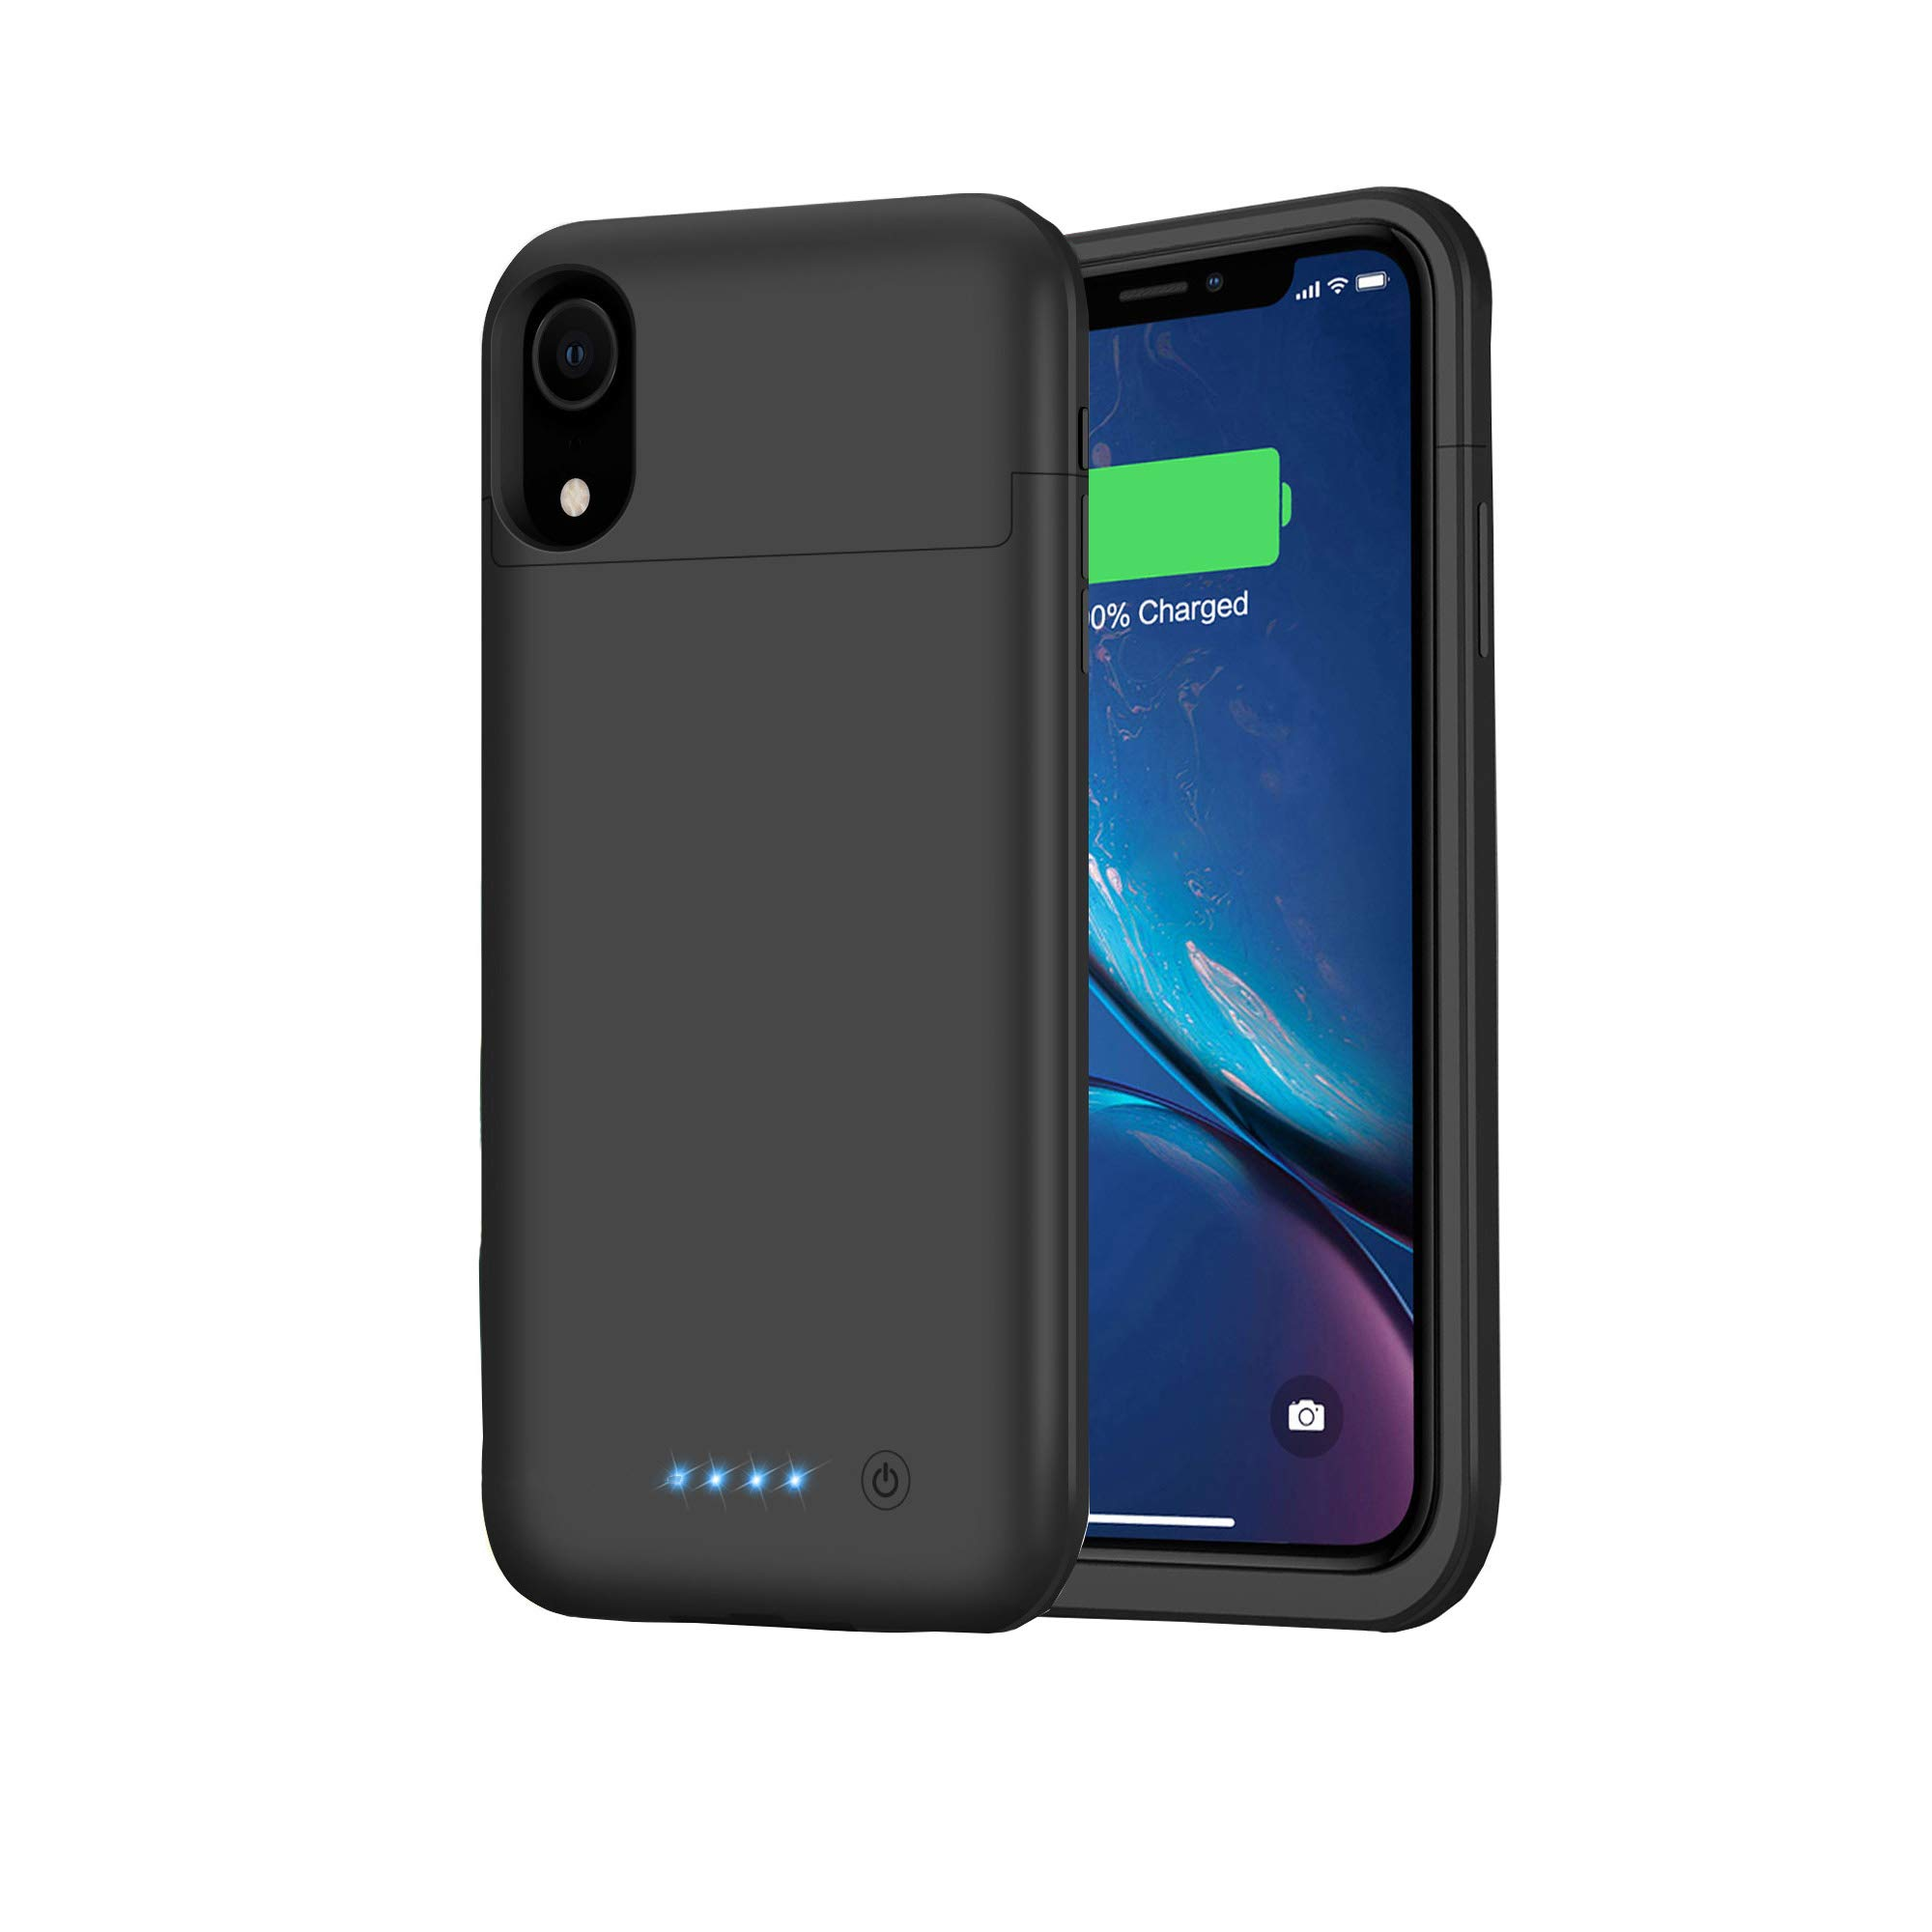 Funda Con Bateria de 5500mah para Apple Iphone Xr FEOB [7HNT6TV6]